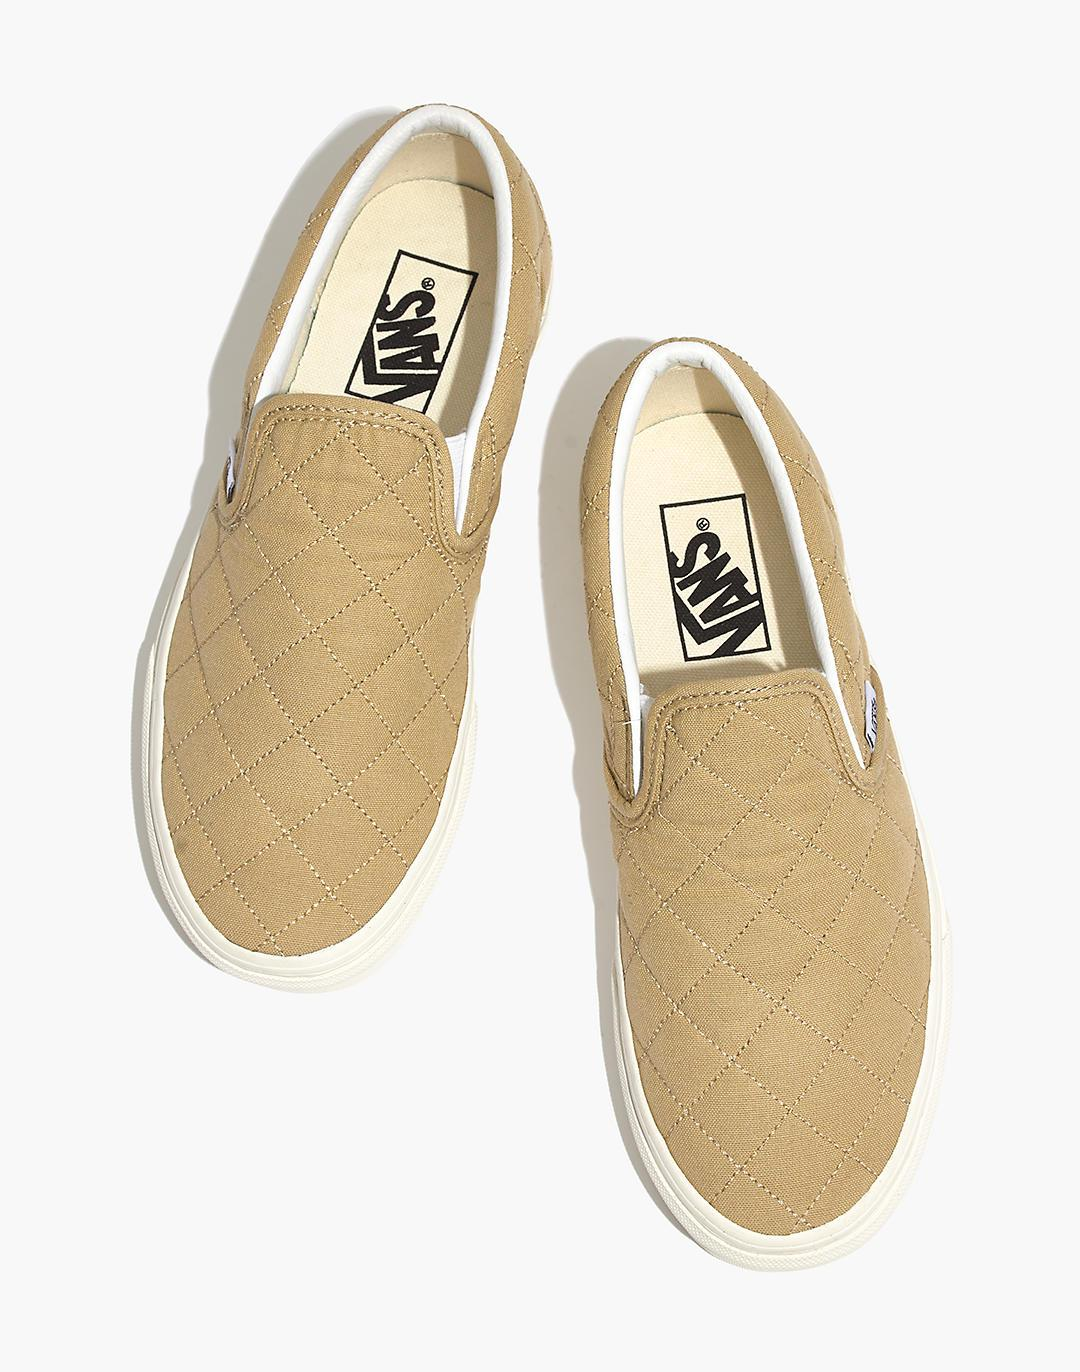 Madewell x Vans® Unisex Classic Slip-On Sneakers in Quilted Fabric